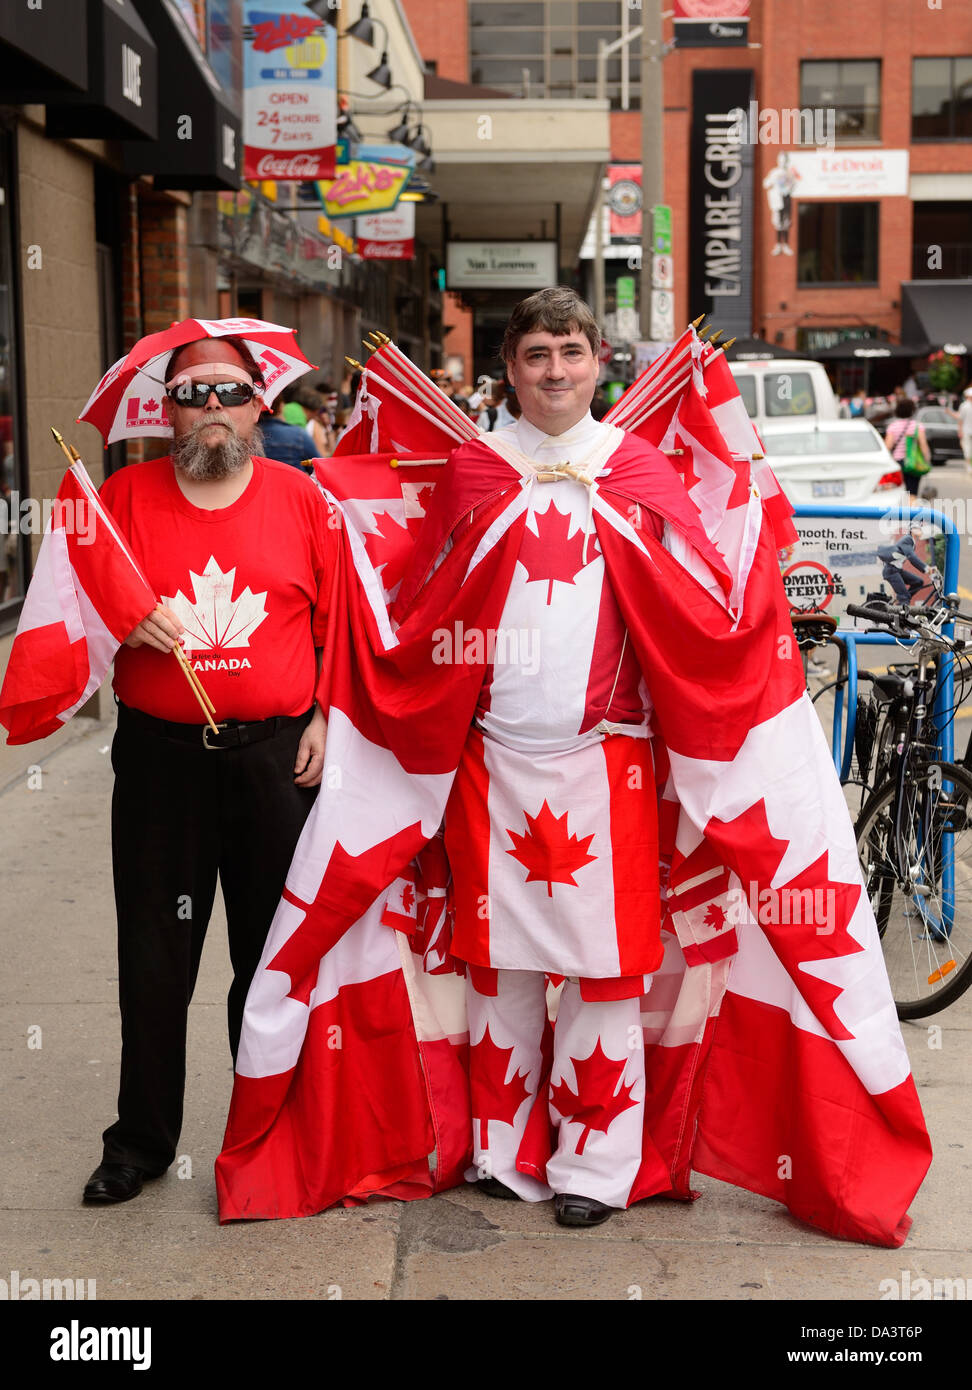 Canada Day revelers display their patriotism at the annual Canada Day celebration in July 1, 2013 in Ottawa, Ontario - Stock Image